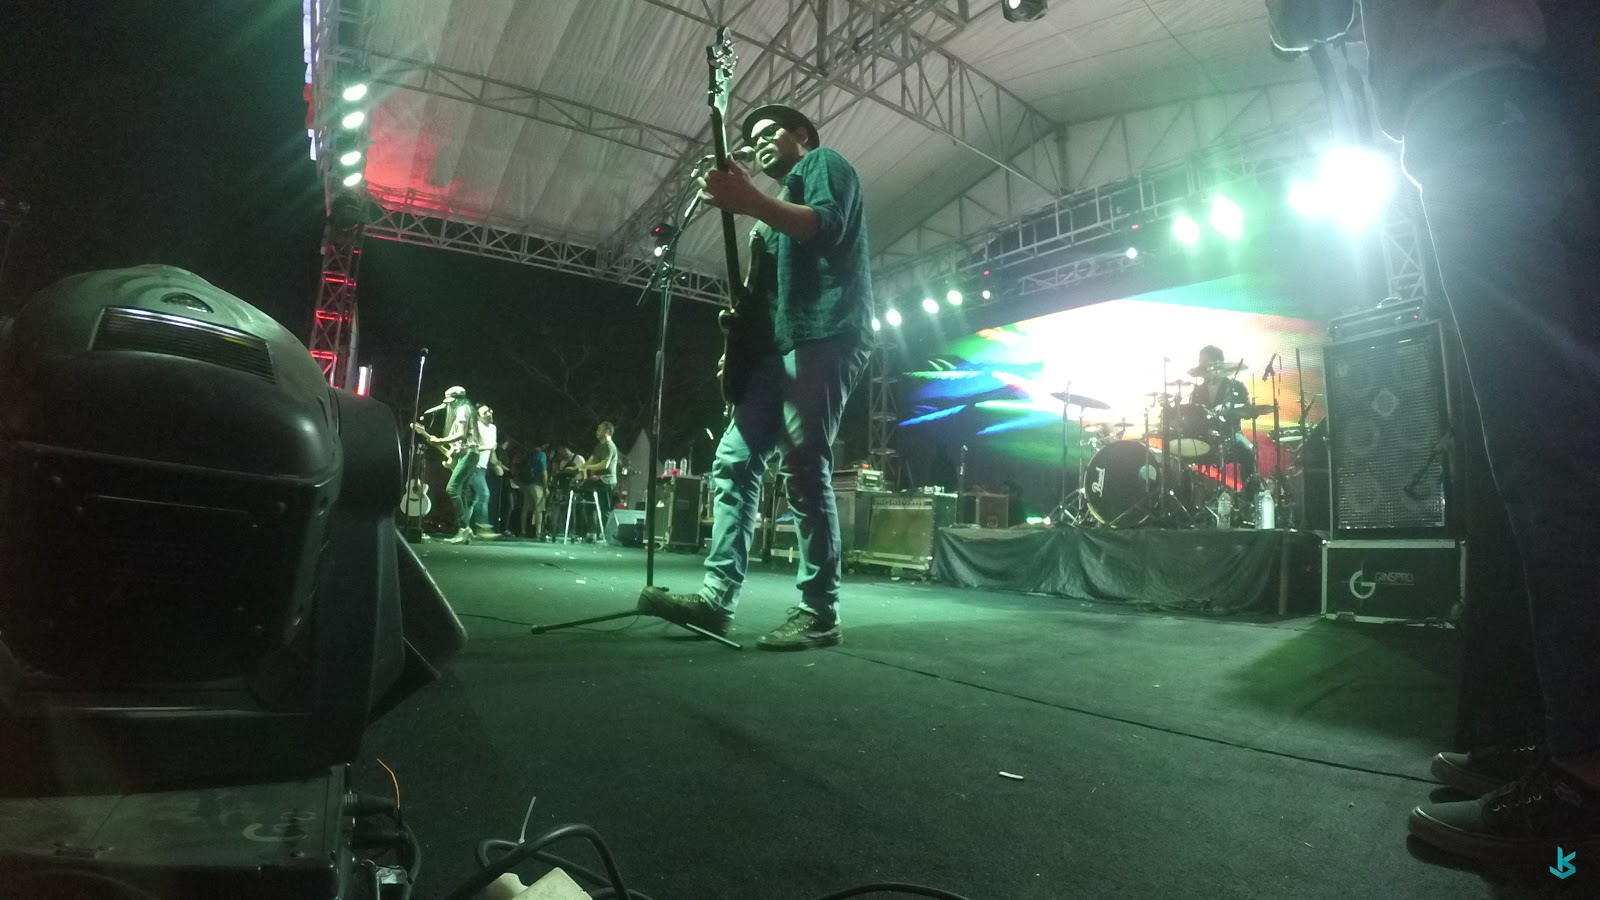 Suasana Konser Band Naif 07 November 2015